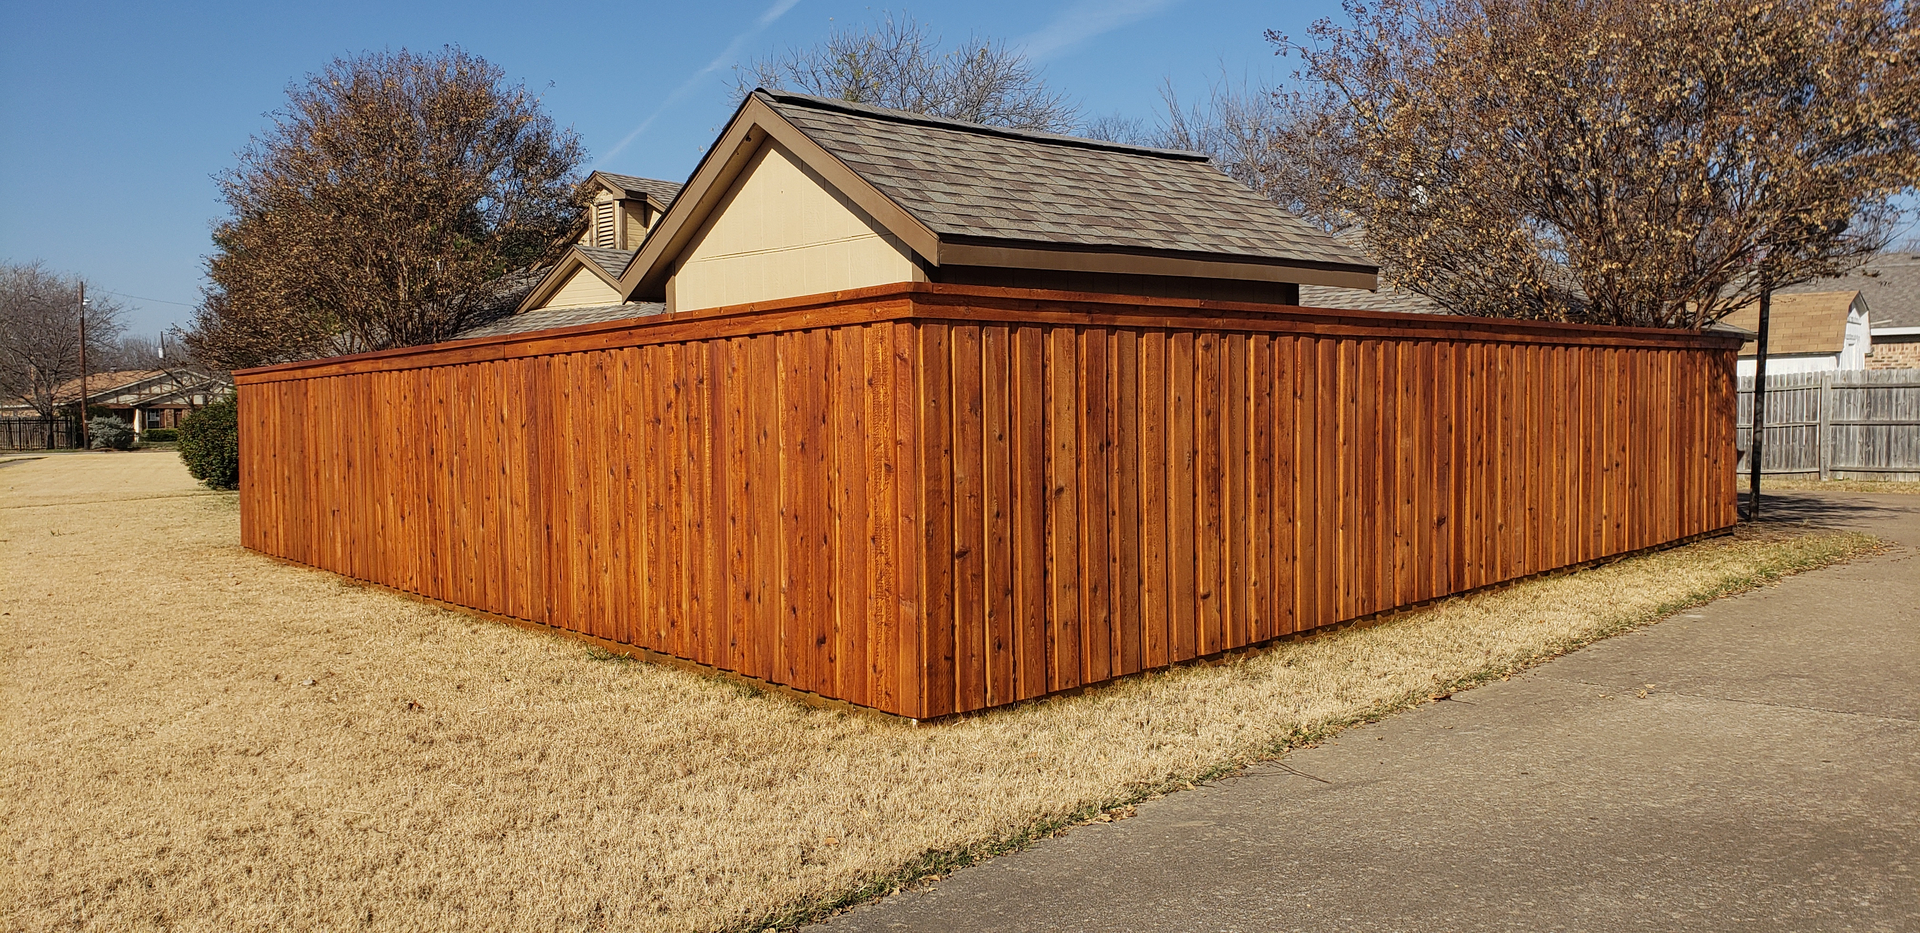 Let us help you with your wood fence ideas